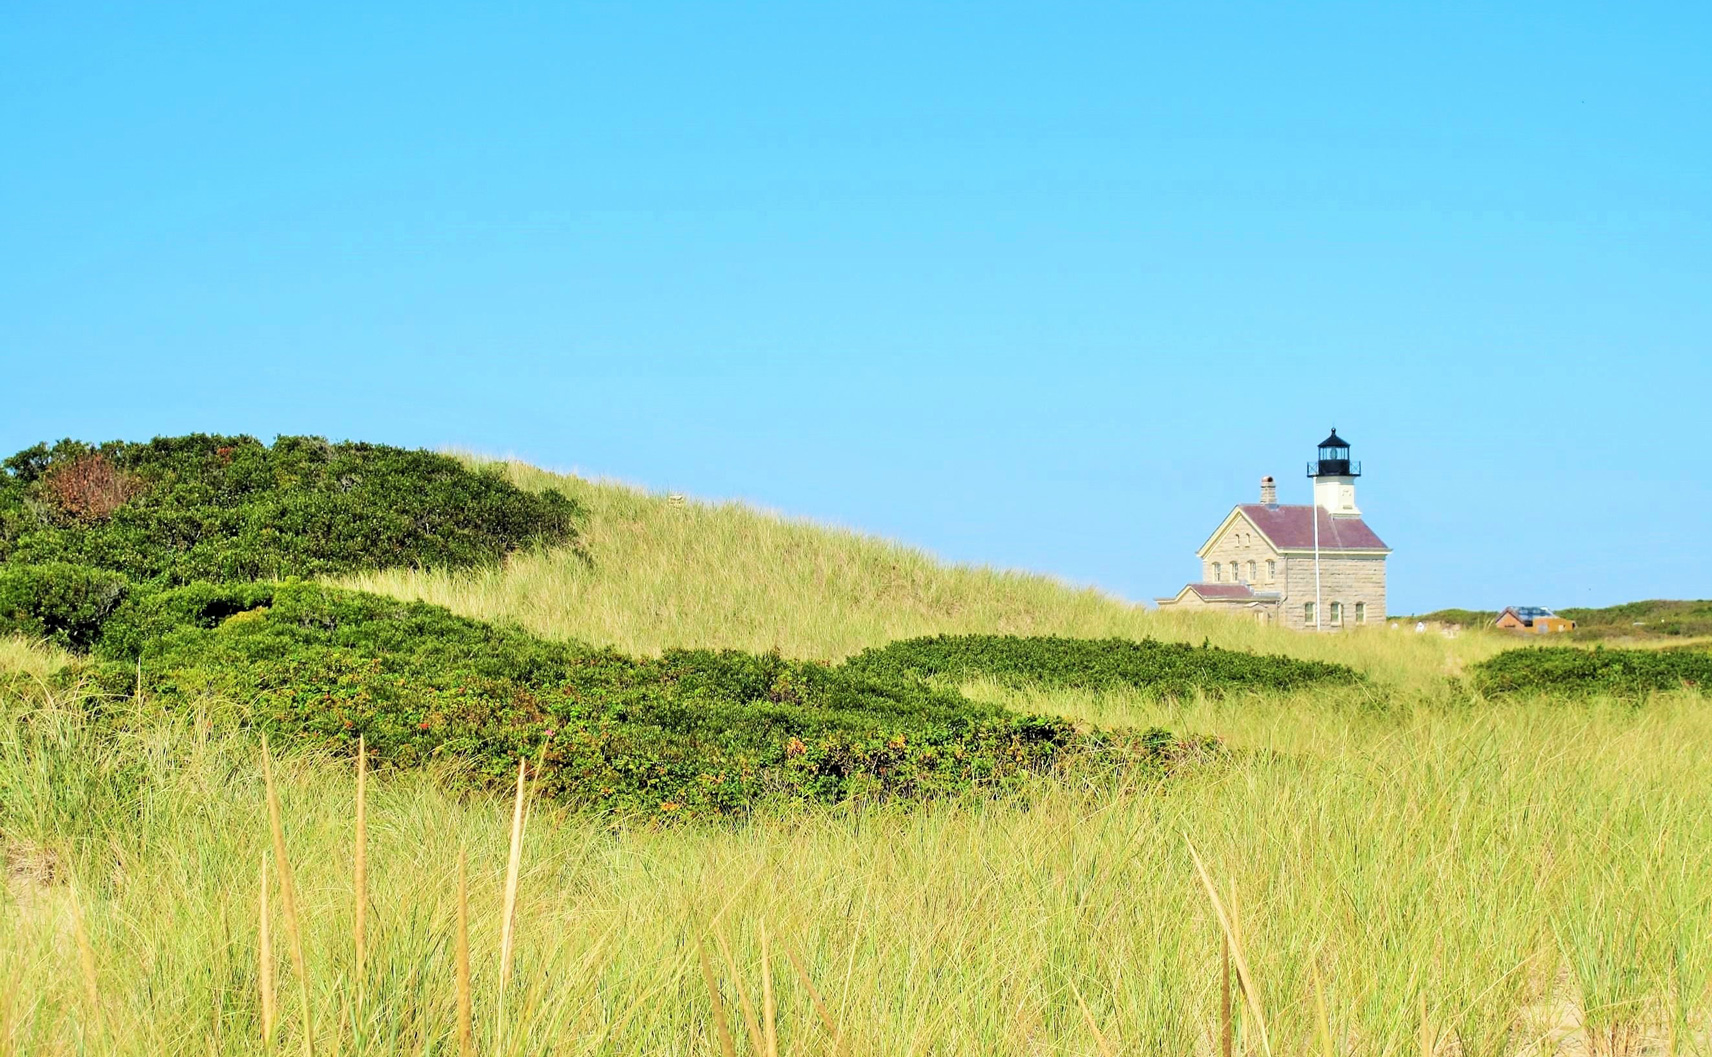 Lighthouse in a green field